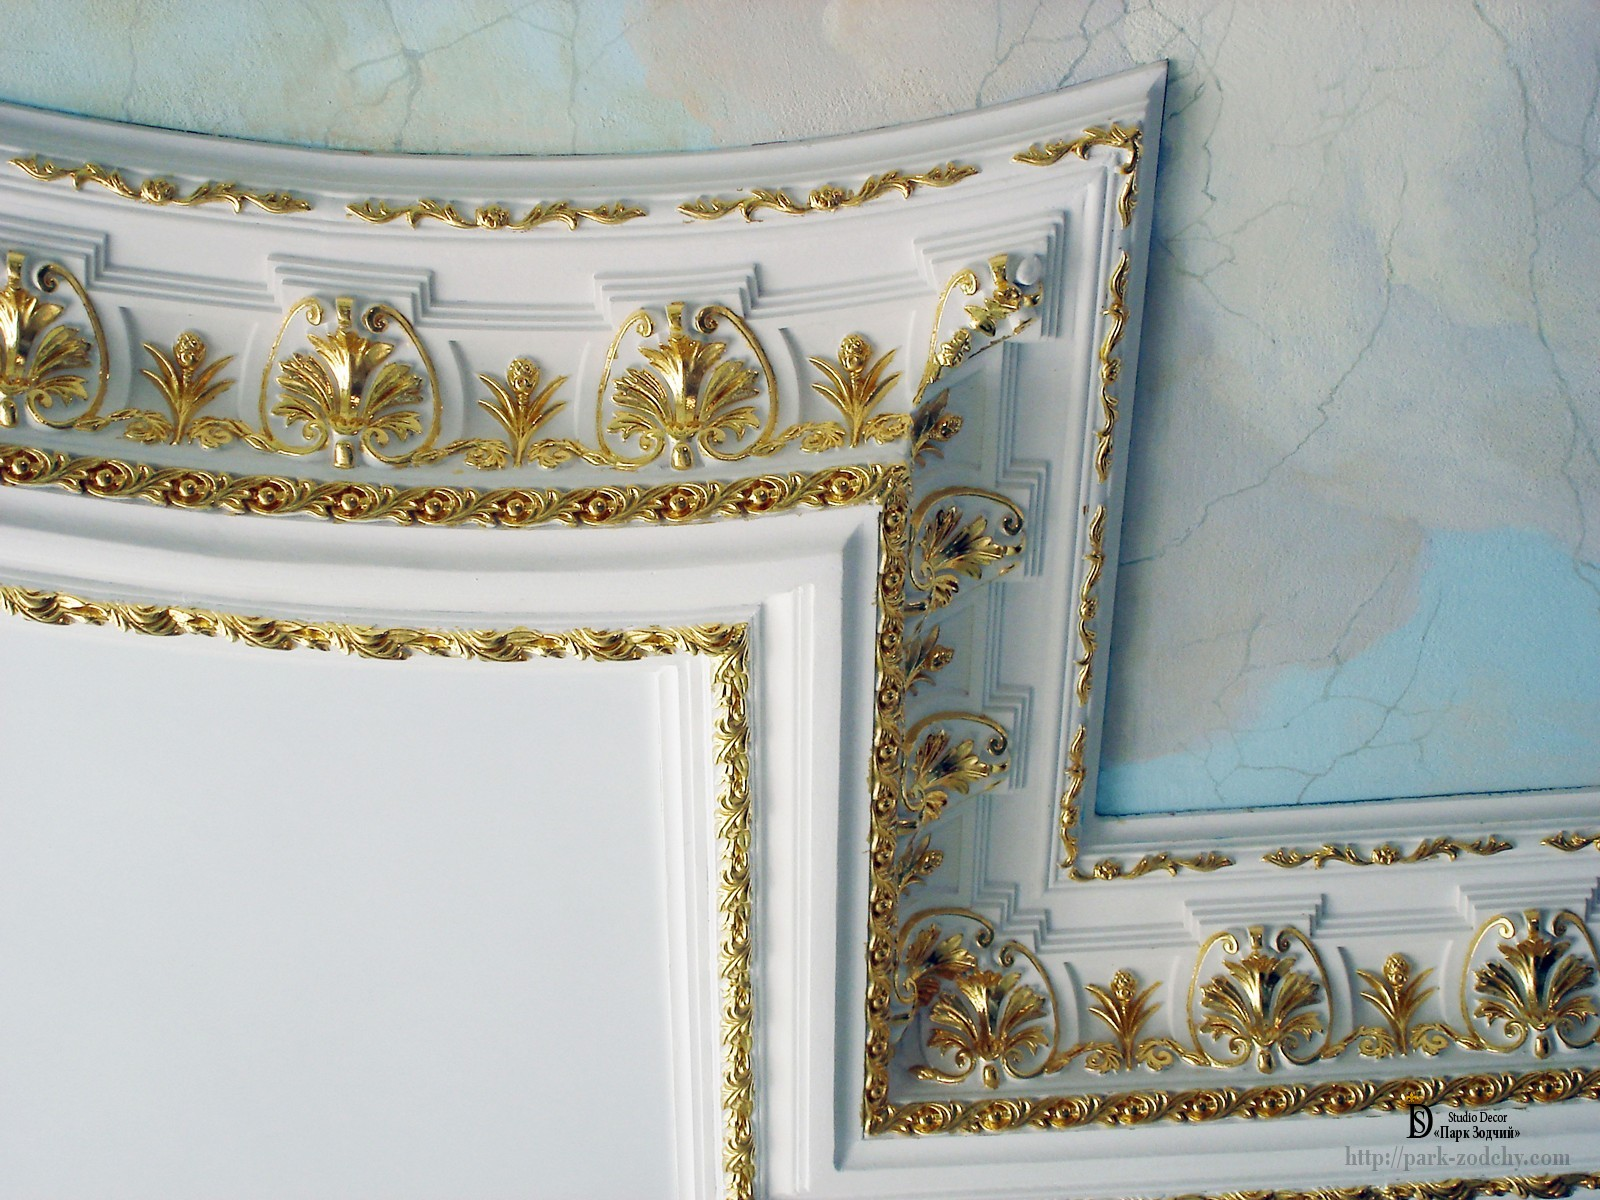 The selective gilding of the stucco cornice in the interior